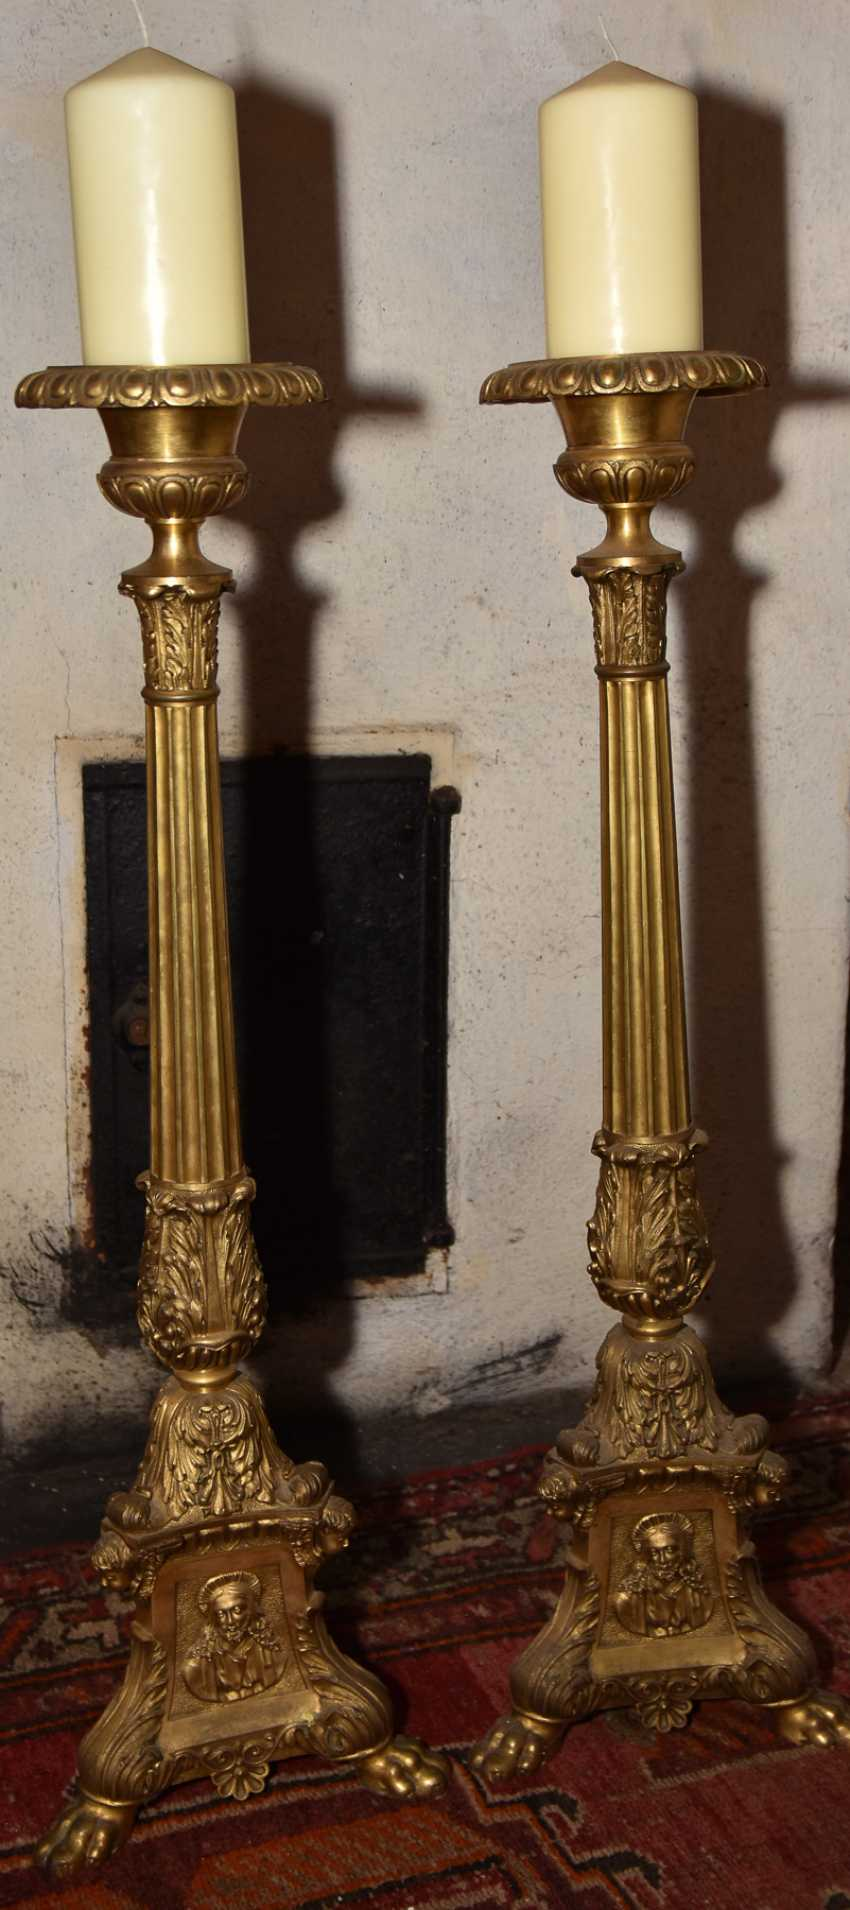 TWO Church chandeliers, brass southern Germany, around 1875 - photo 2